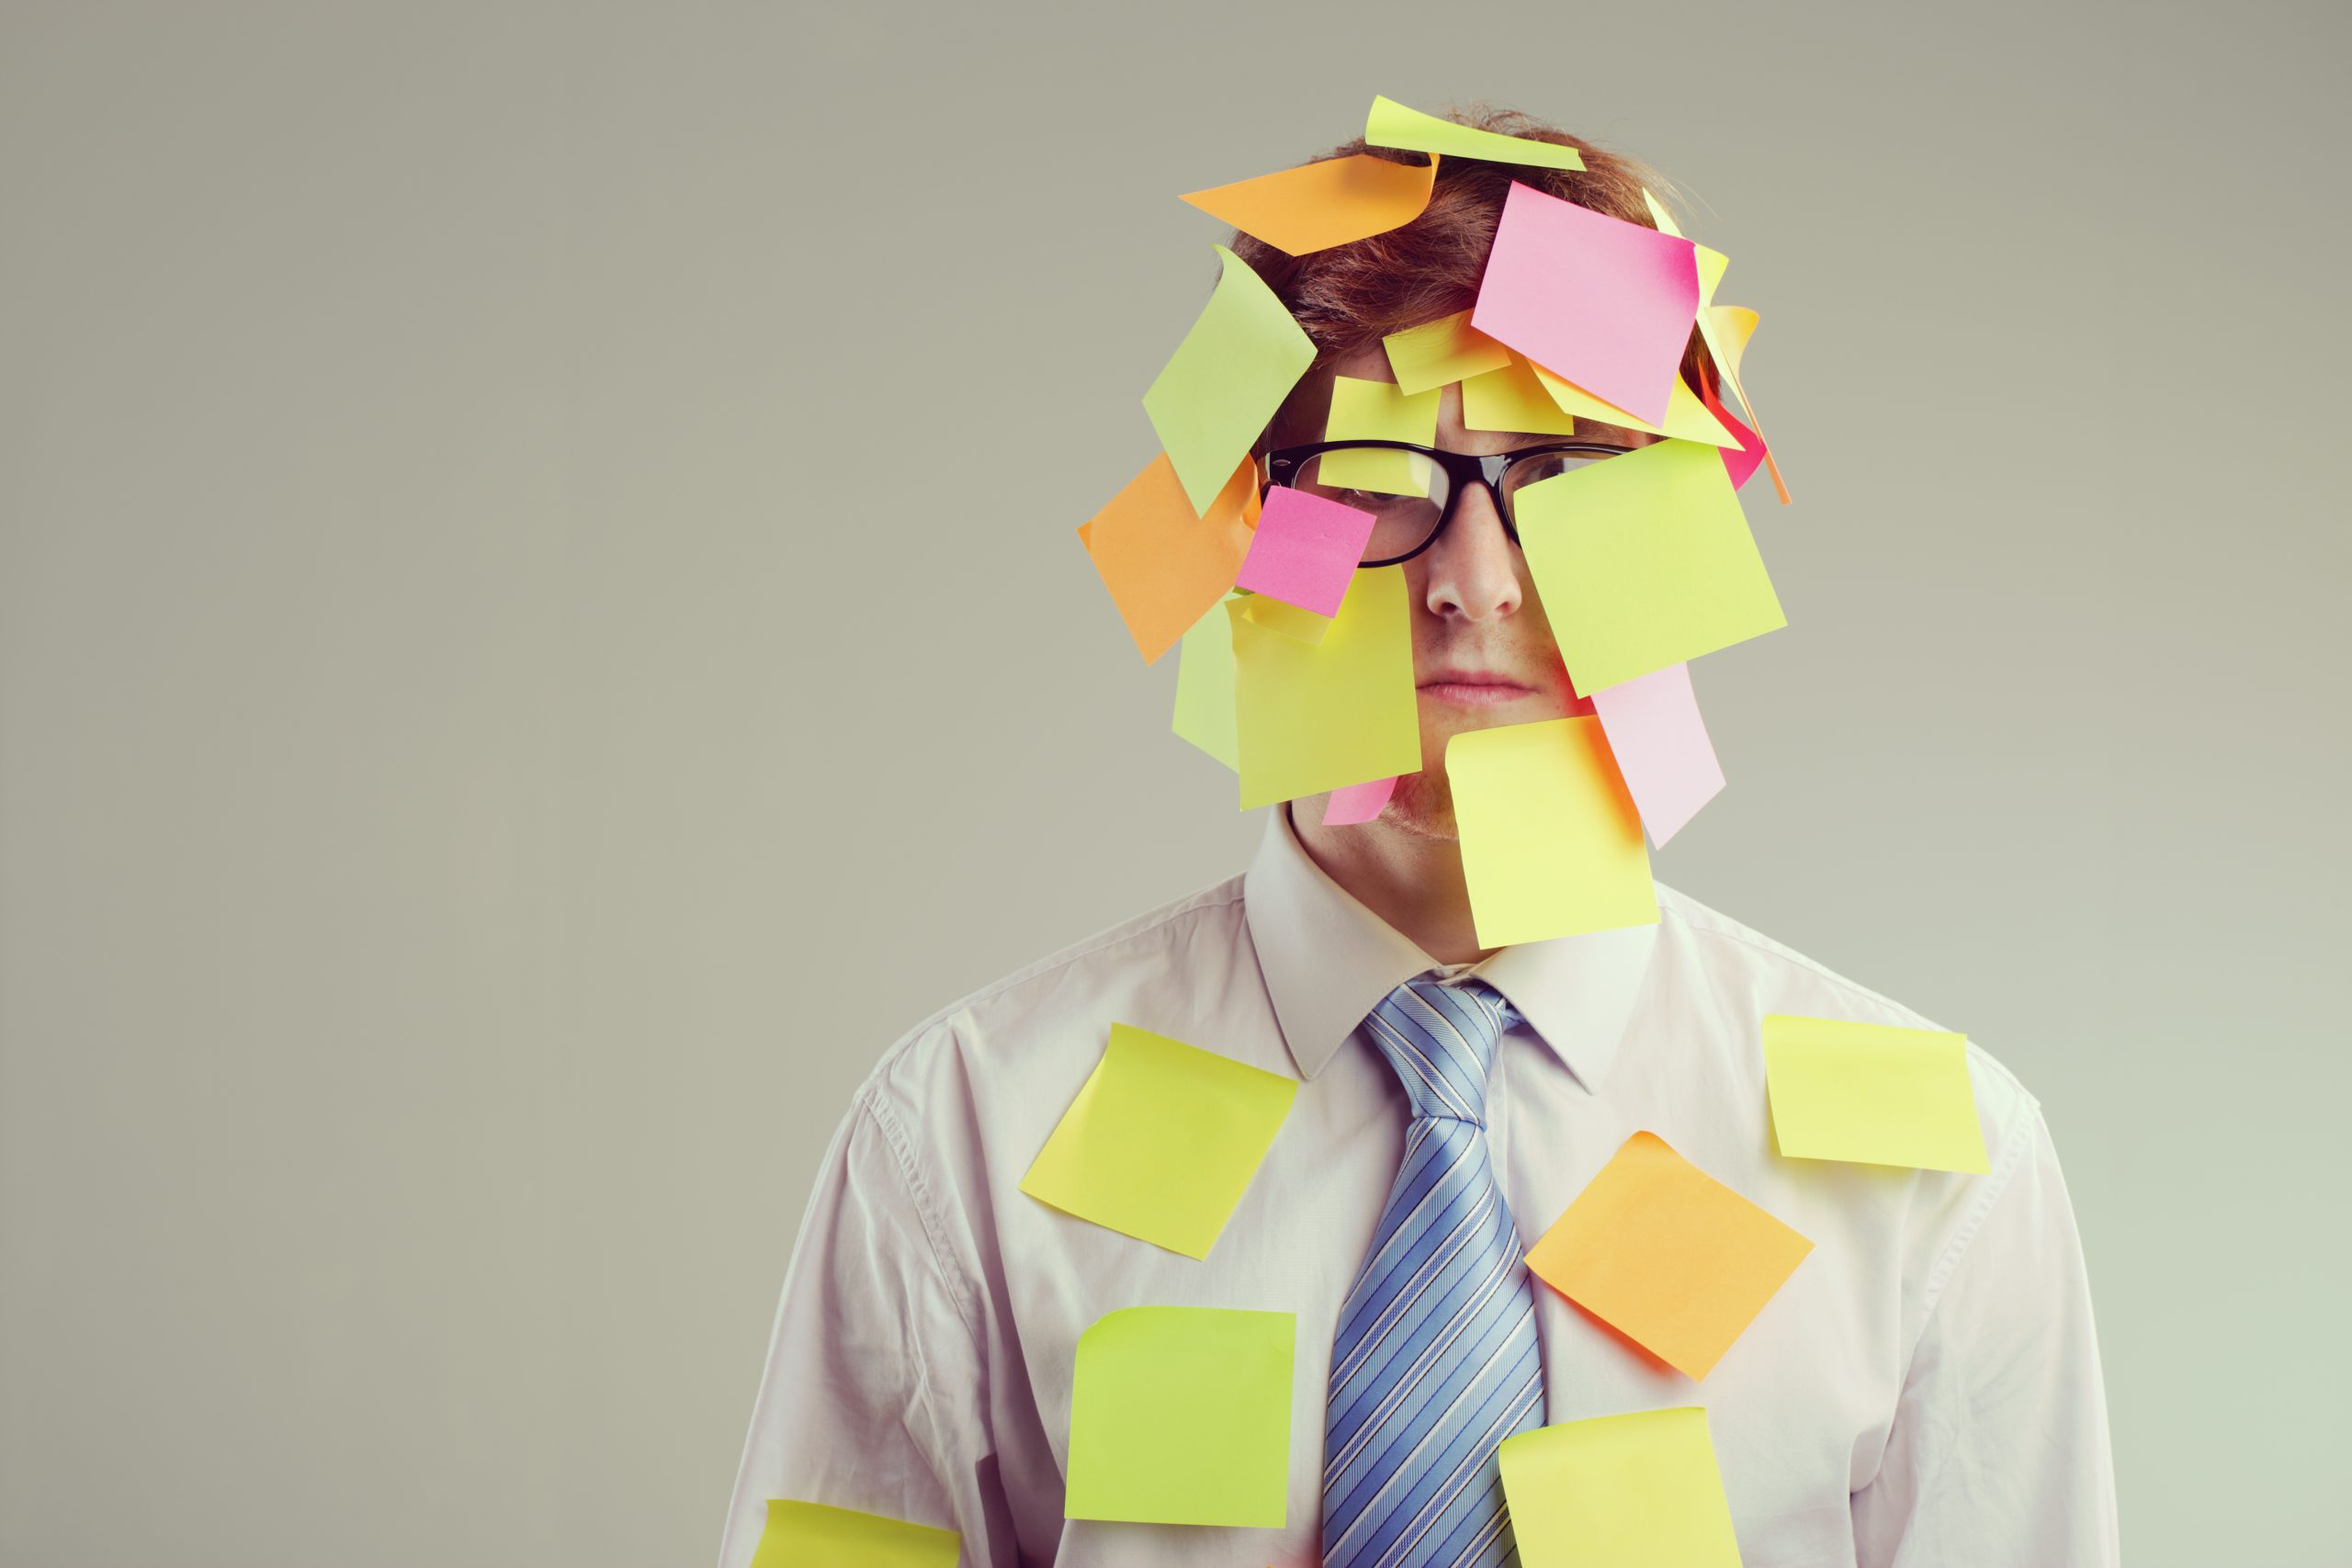 Office worker with post-its all over his face